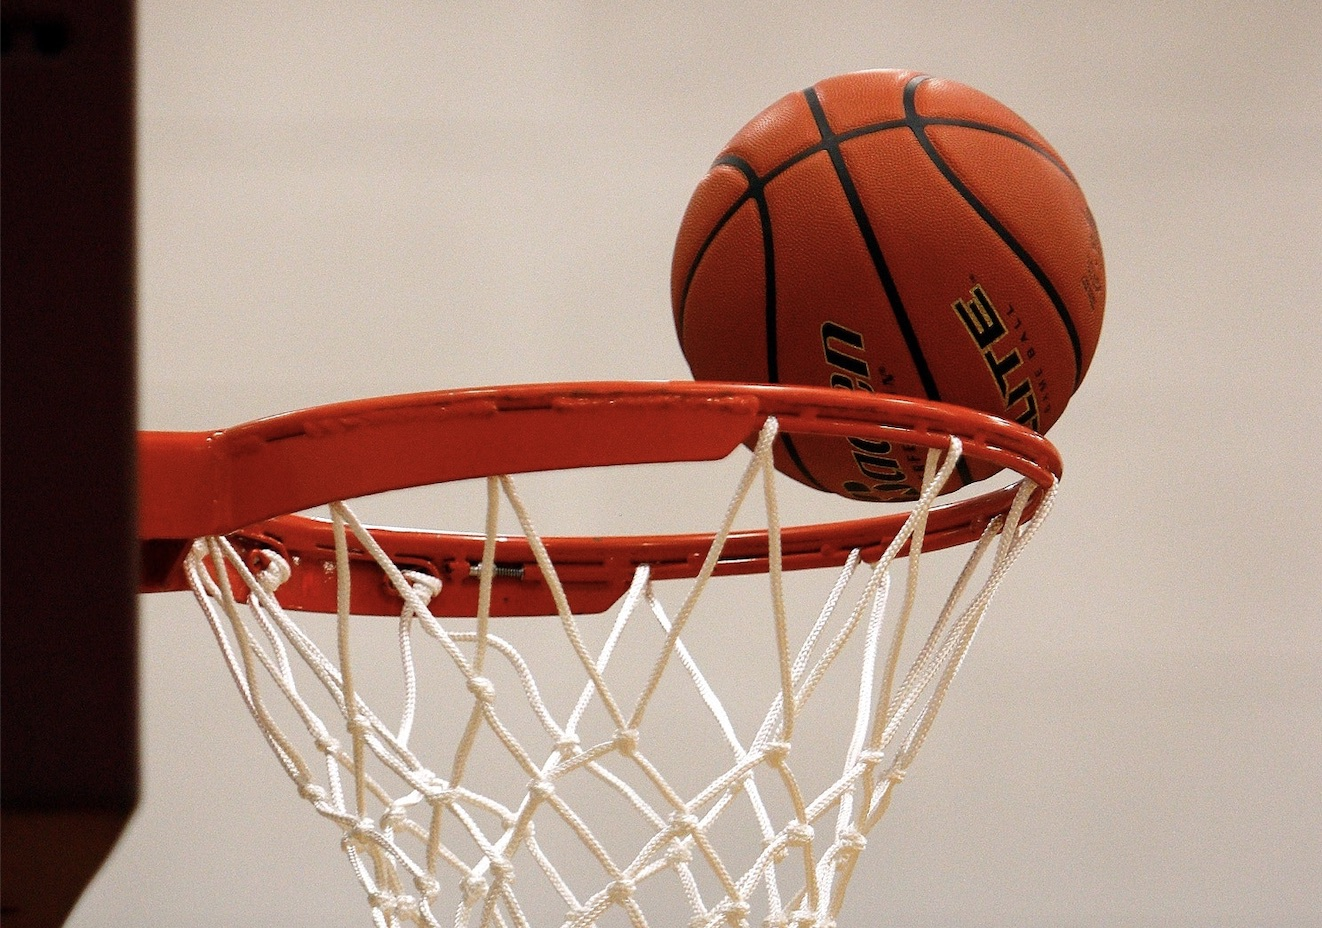 Low-risk sports allowed in some regions; basketball still paused